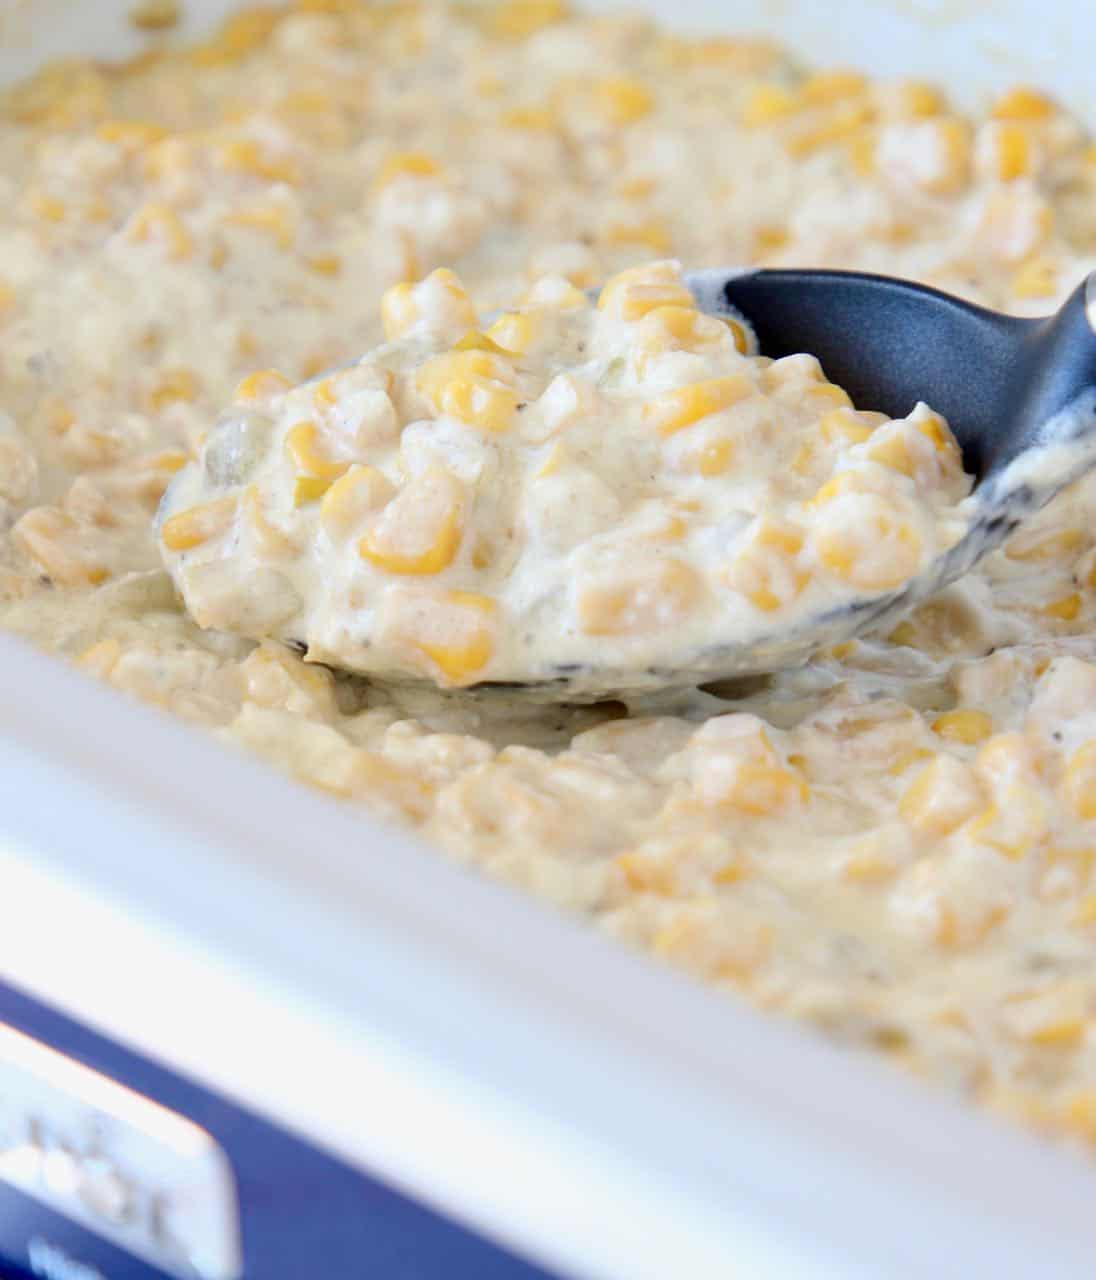 Creamed corn in crock pot with serving spoon